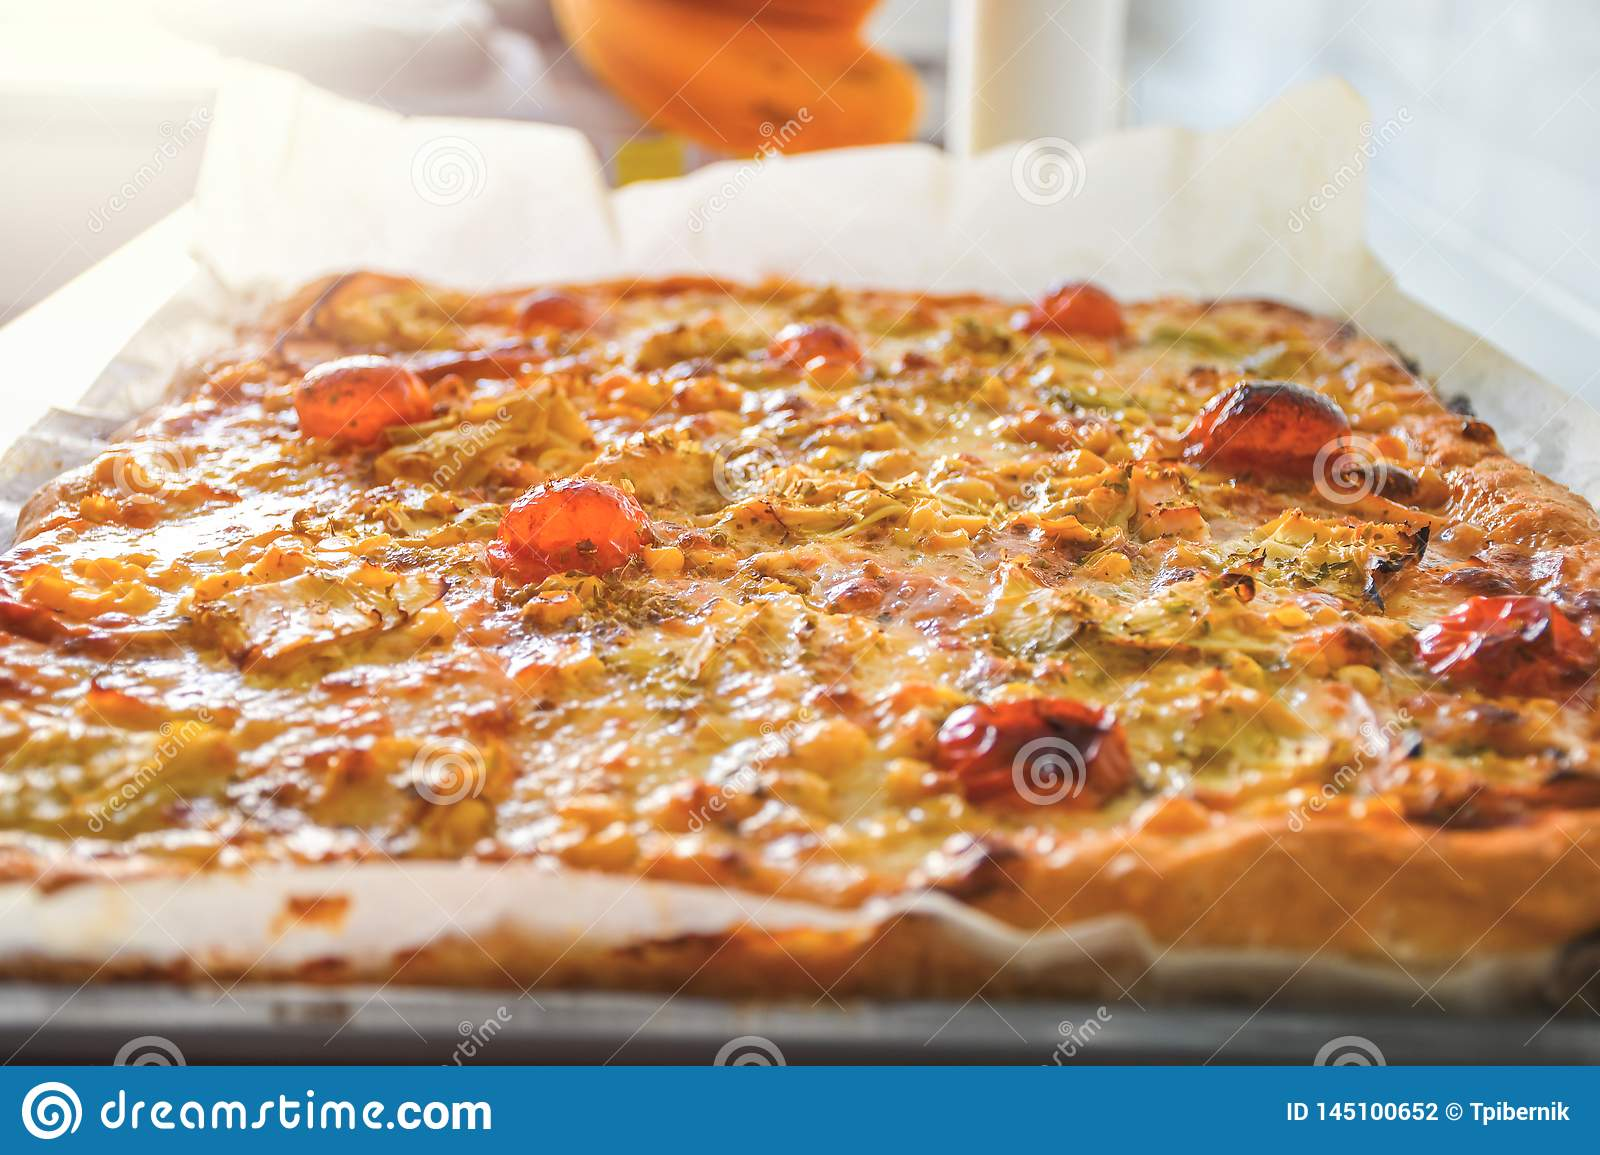 Freshly baked hot homemade pizza with red tomato vegetables and white mozzarella cheese